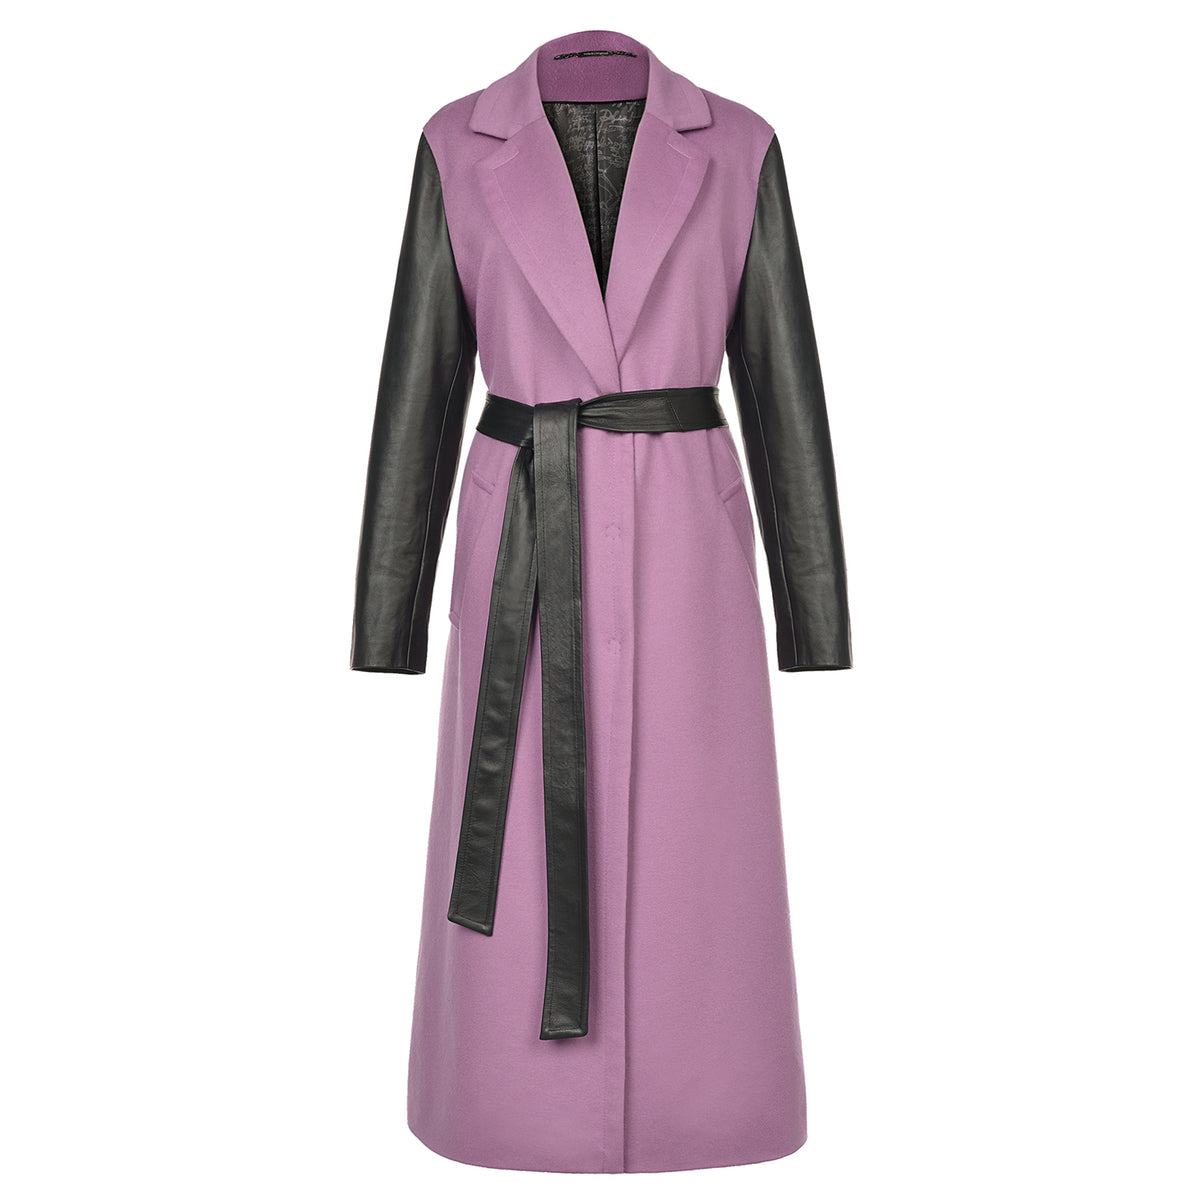 'Amen Rose' Cashmere Trench Coat - VOLS & ORIGINAL